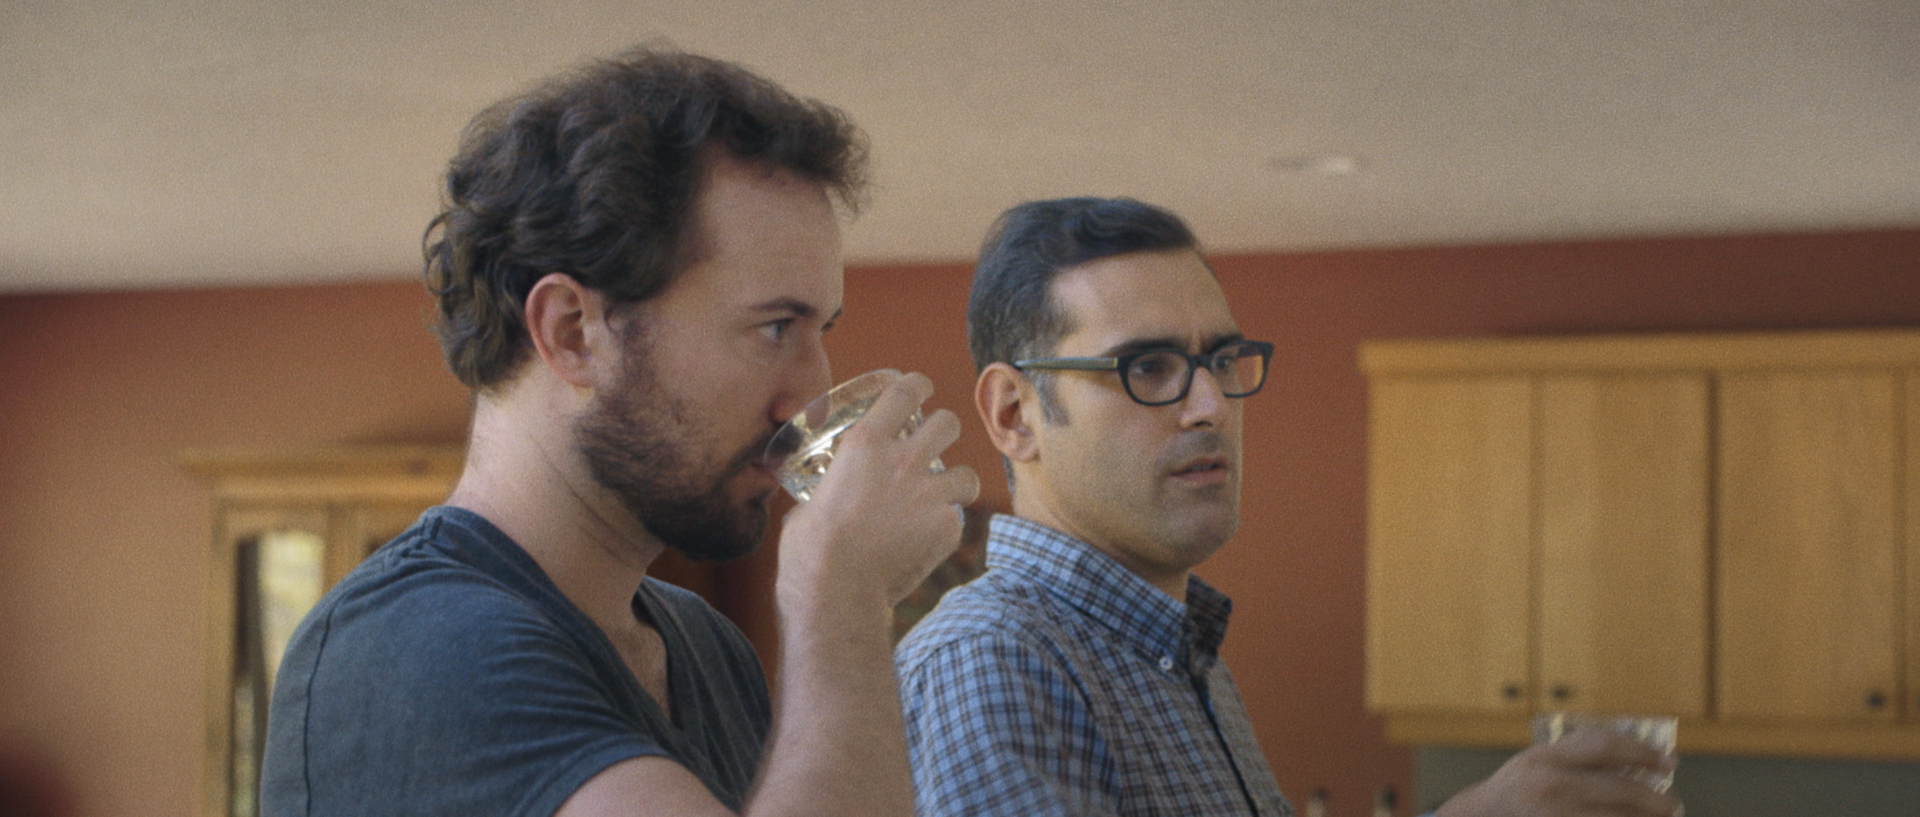 L to R: Jon Titterington as Tim and Robert D'Esposito as Anthony.Image courtesy of Hunter Way Pictures.